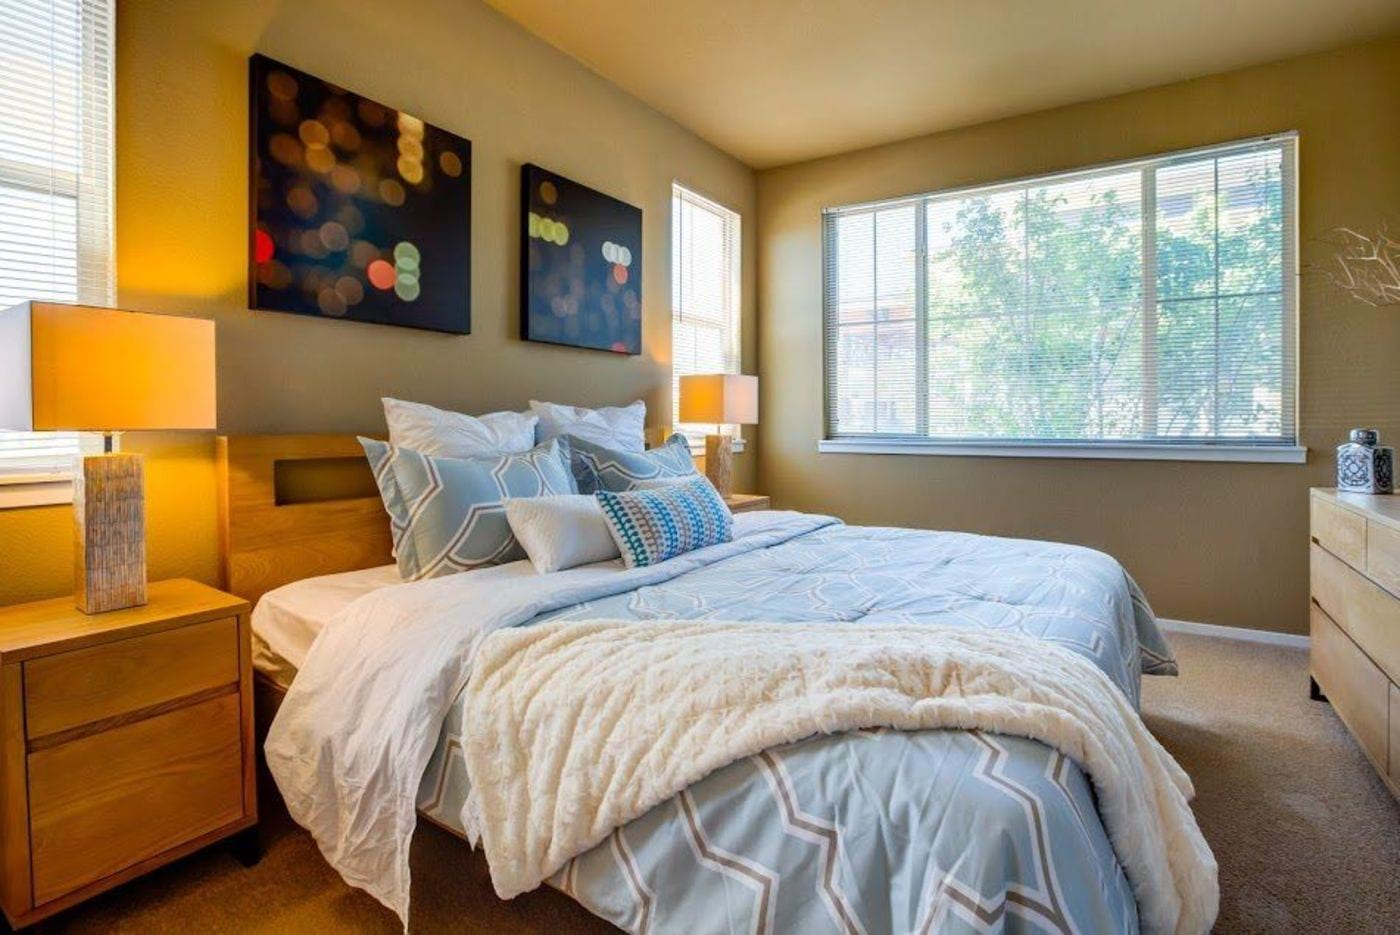 Prana Apartment Homes - Image of the model apartment bedroom with a bed, side table with a lamp, and plush carpeting.